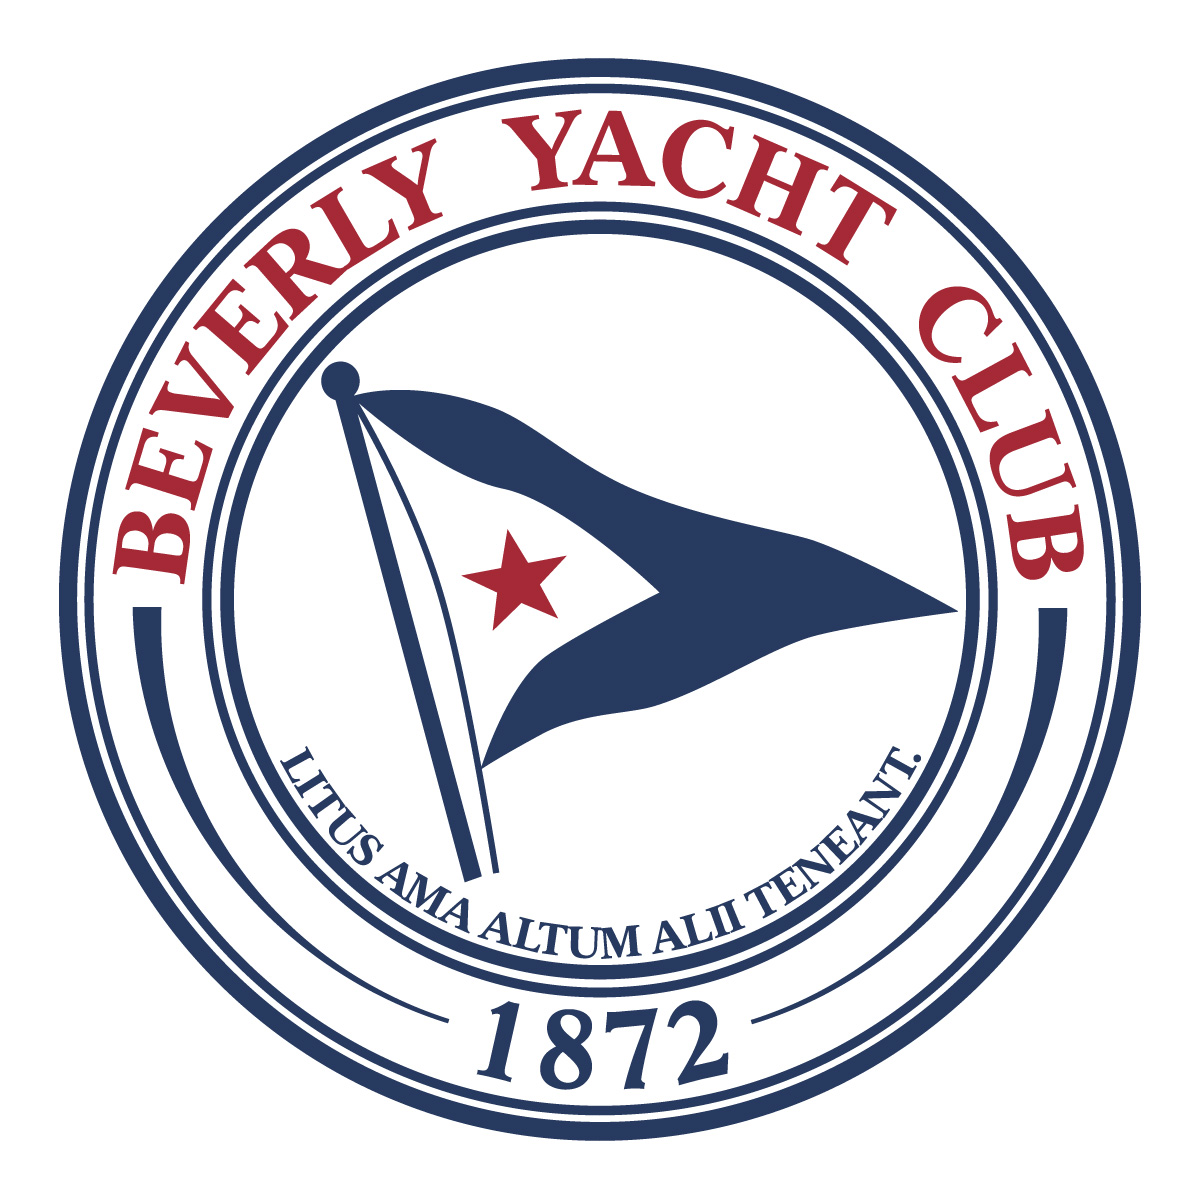 about us beverly yacht club marion ma rh beverlyyachtclub org yacht club logo vector yacht club logo png